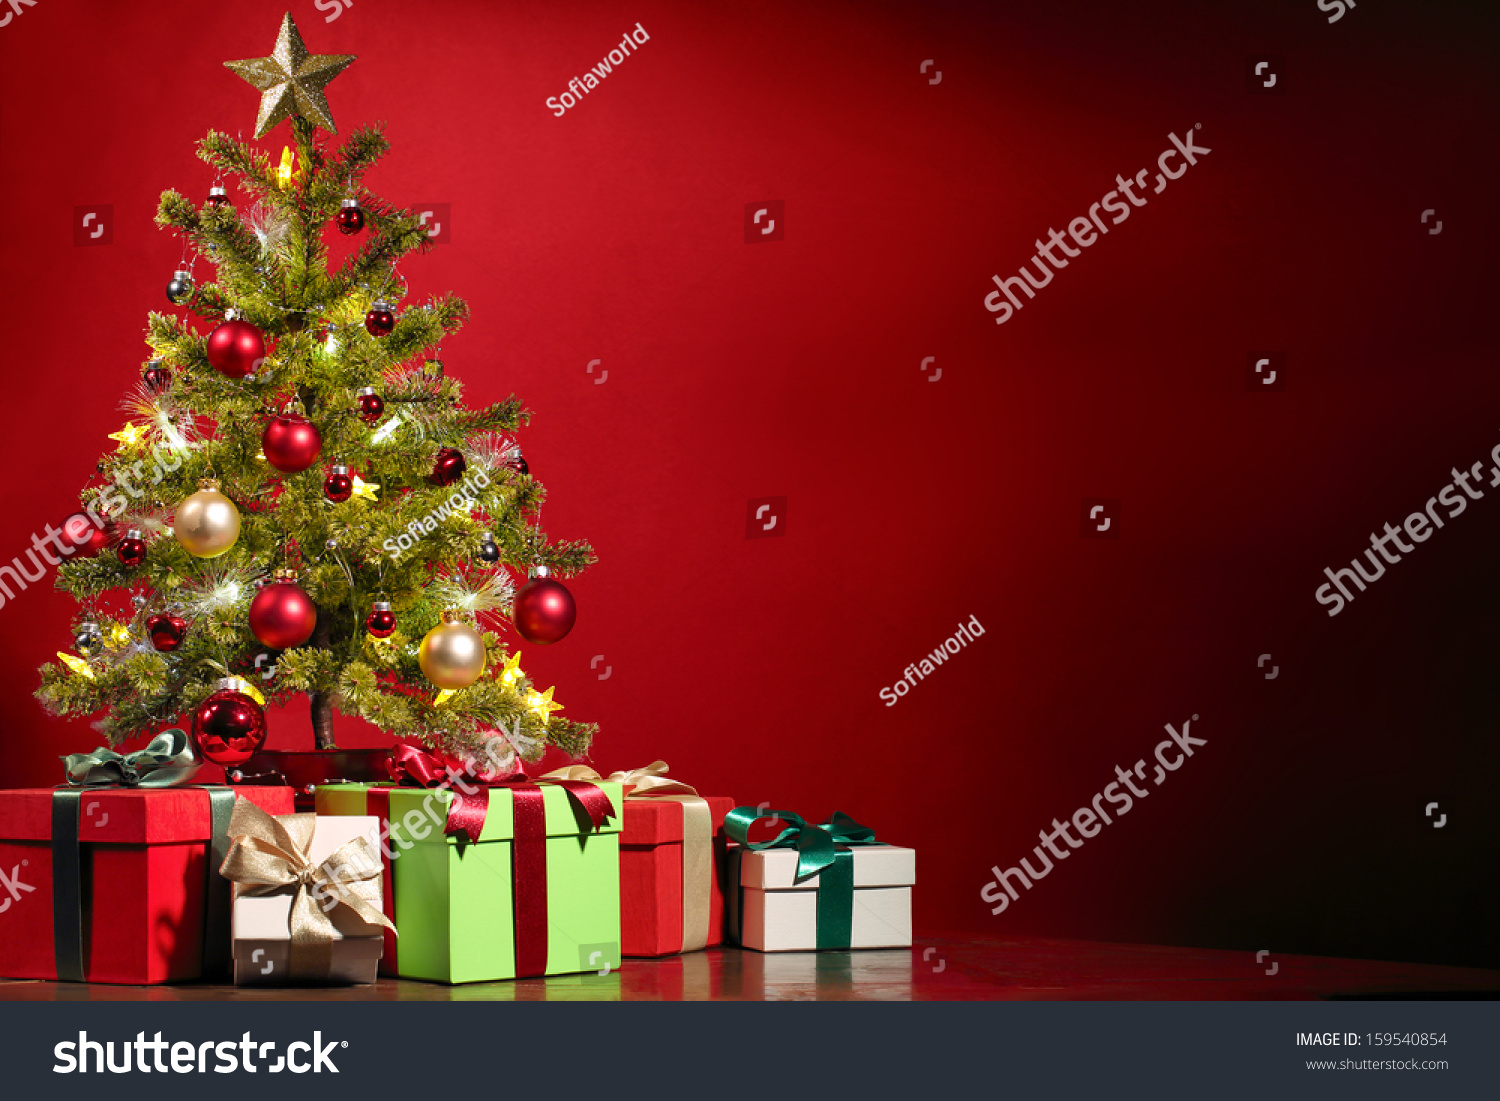 Christmas tree with presents and lights - Christmas Tree With Gifts On Red Background